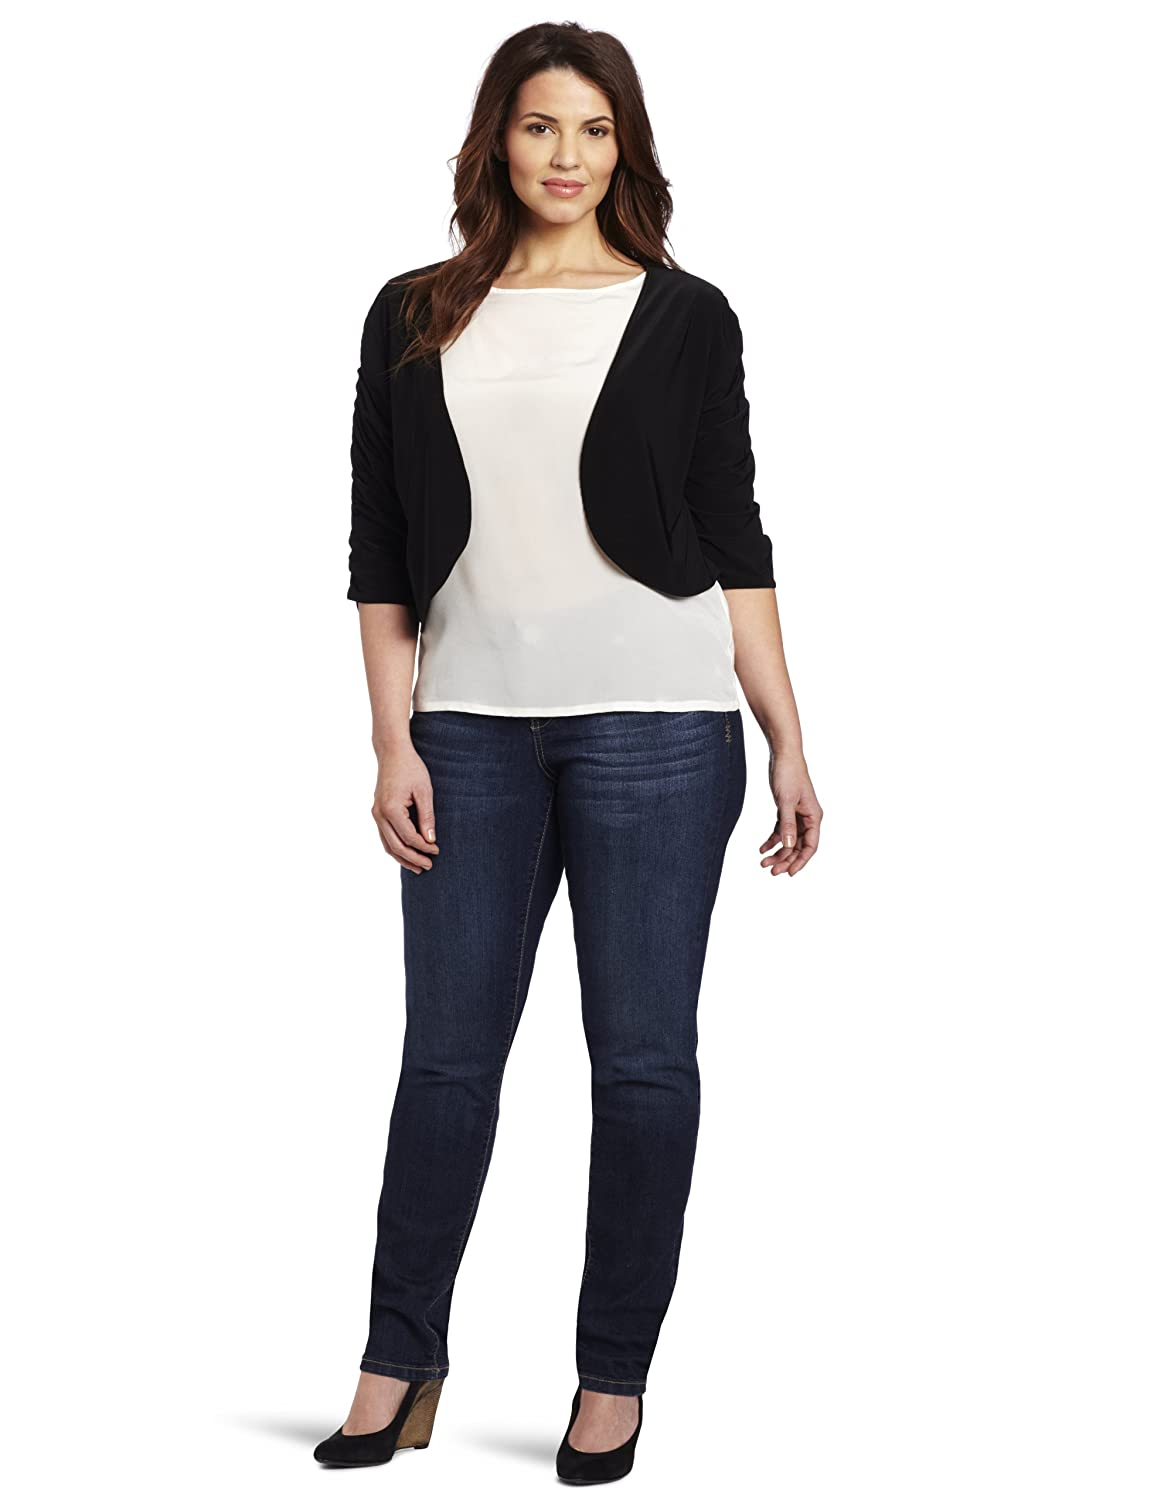 Star Vixen Women's Plus-Size Rouched Sleeve Bolero Sweater Star Vixen Child Code 5201-IT-X